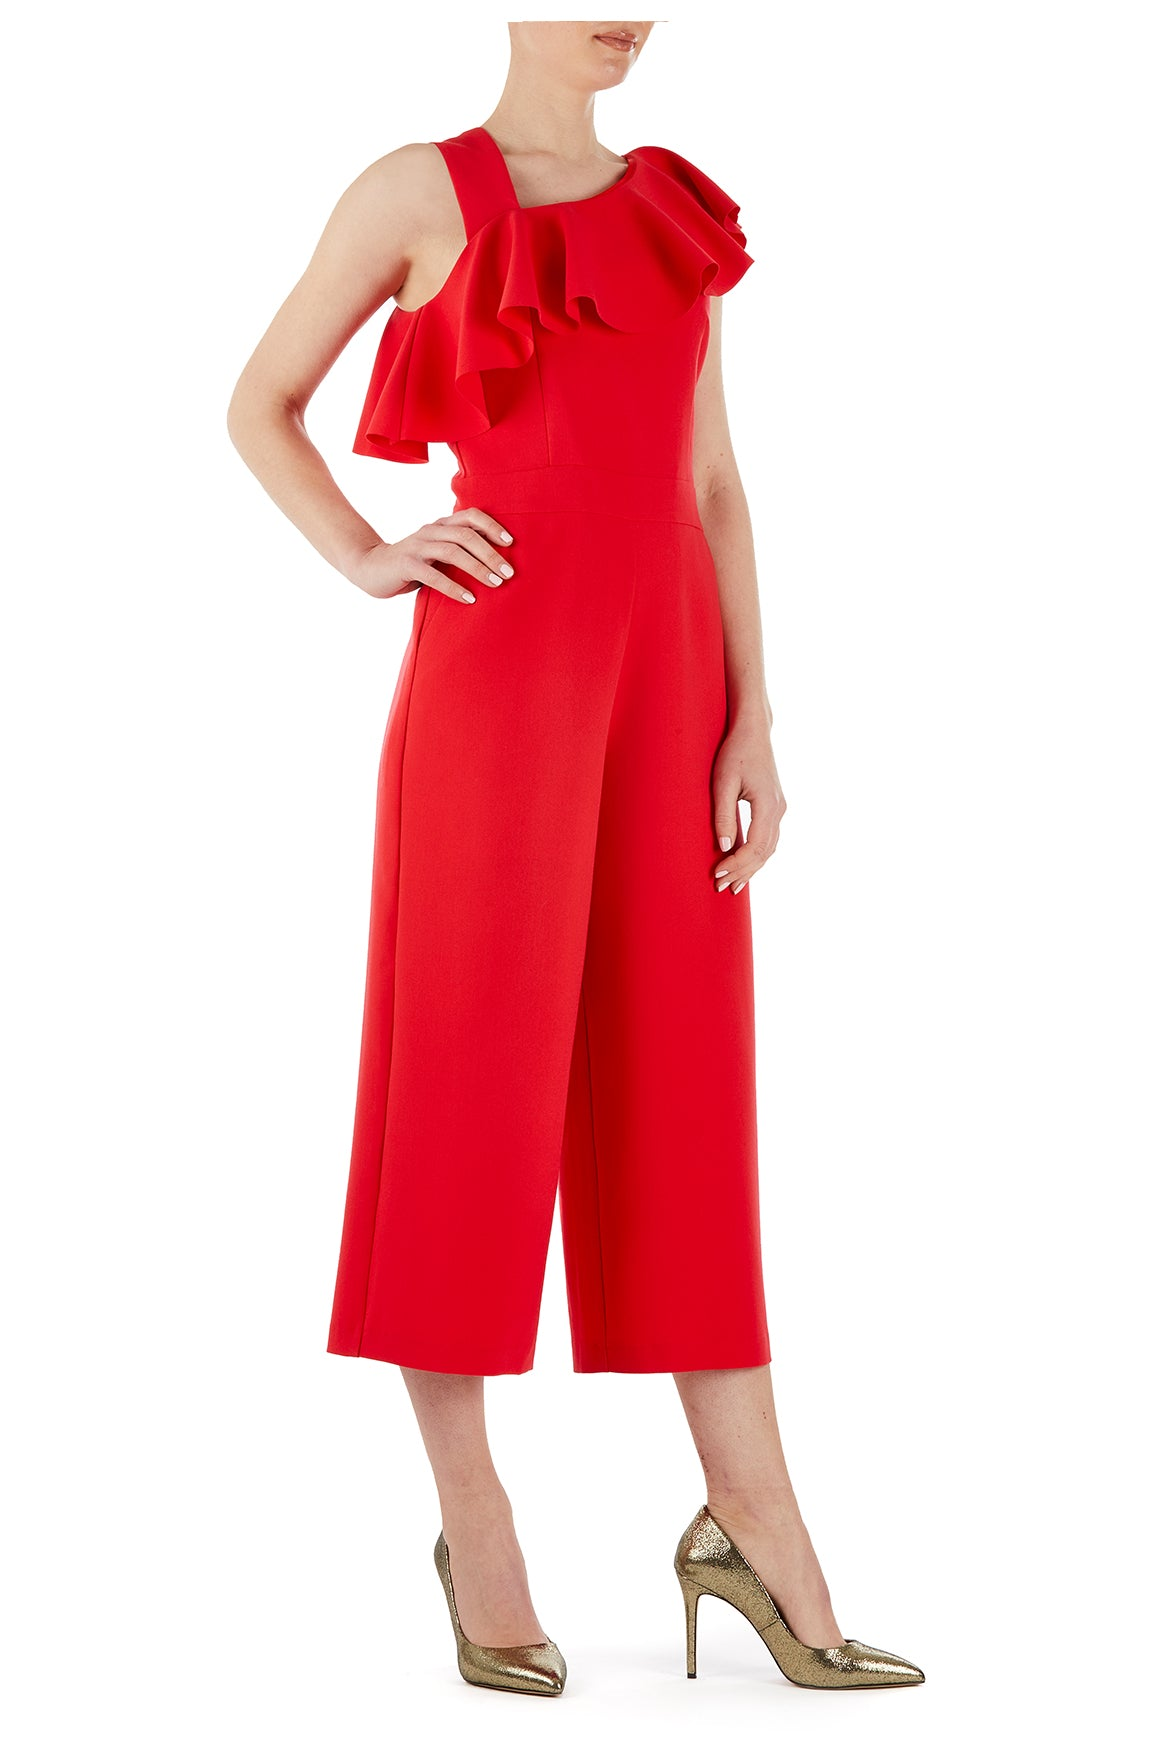 Thea Red by Bourne 60ddd8c43